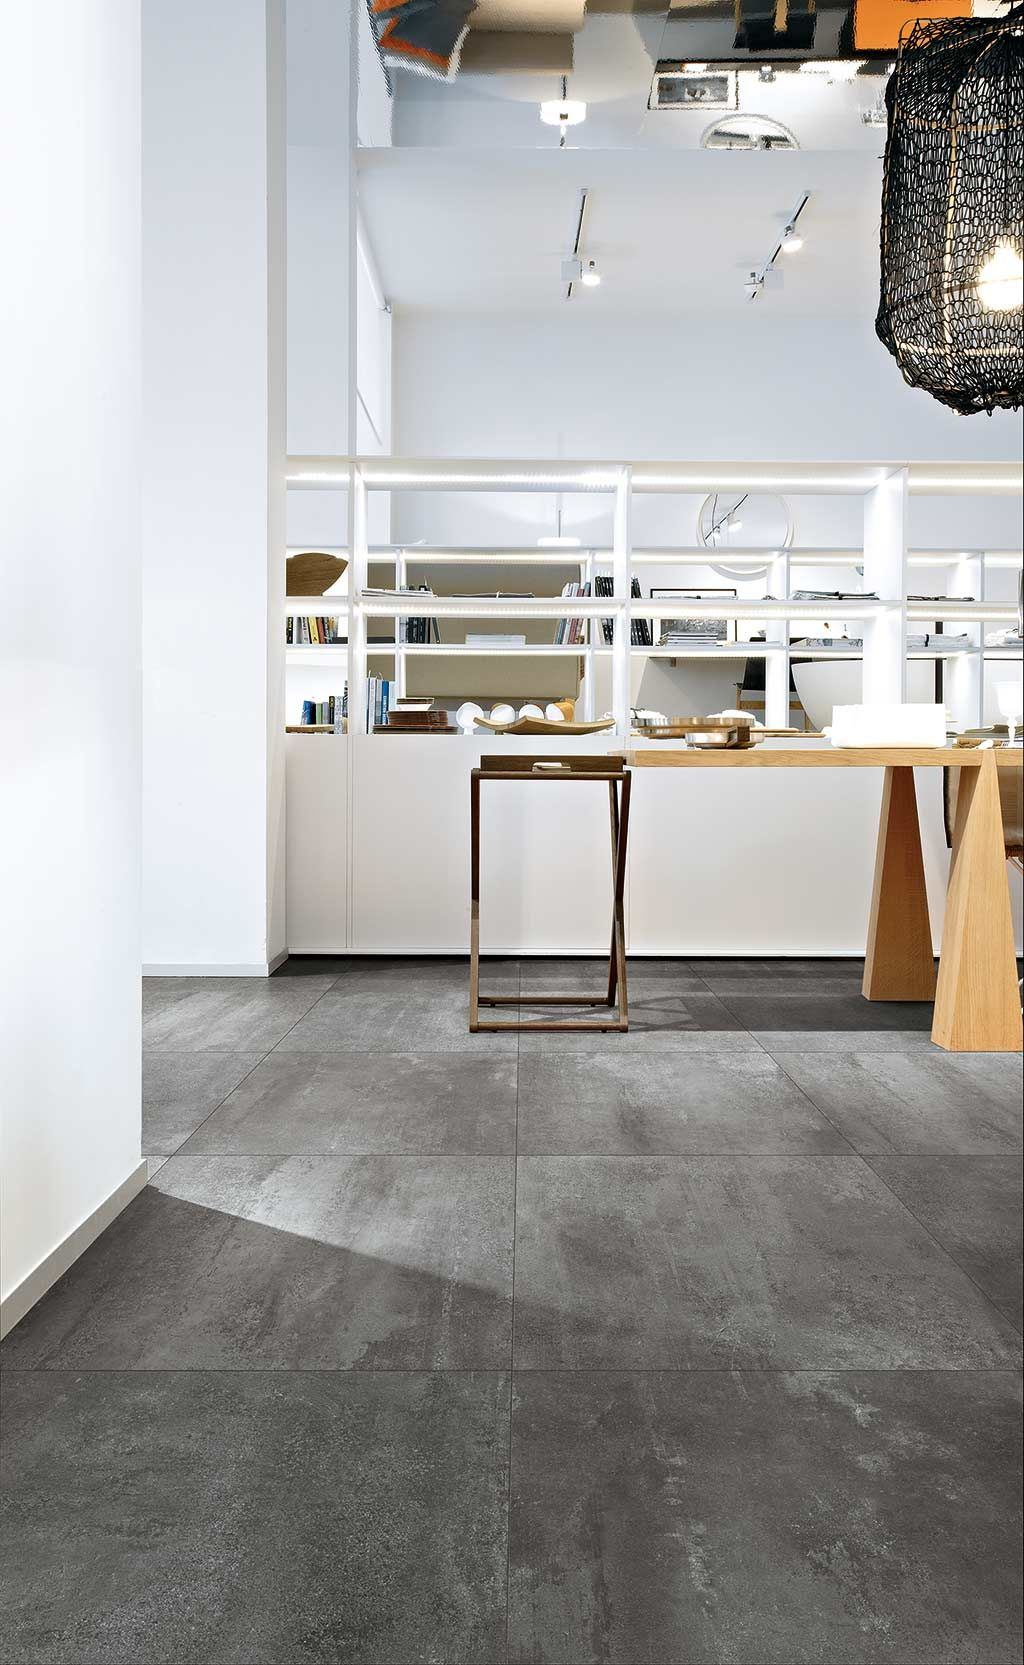 Rawtech Raw Concrete Look Tiles Floor Gres Florim Ceramiche Concrete Look Tile Tile Floor Flooring